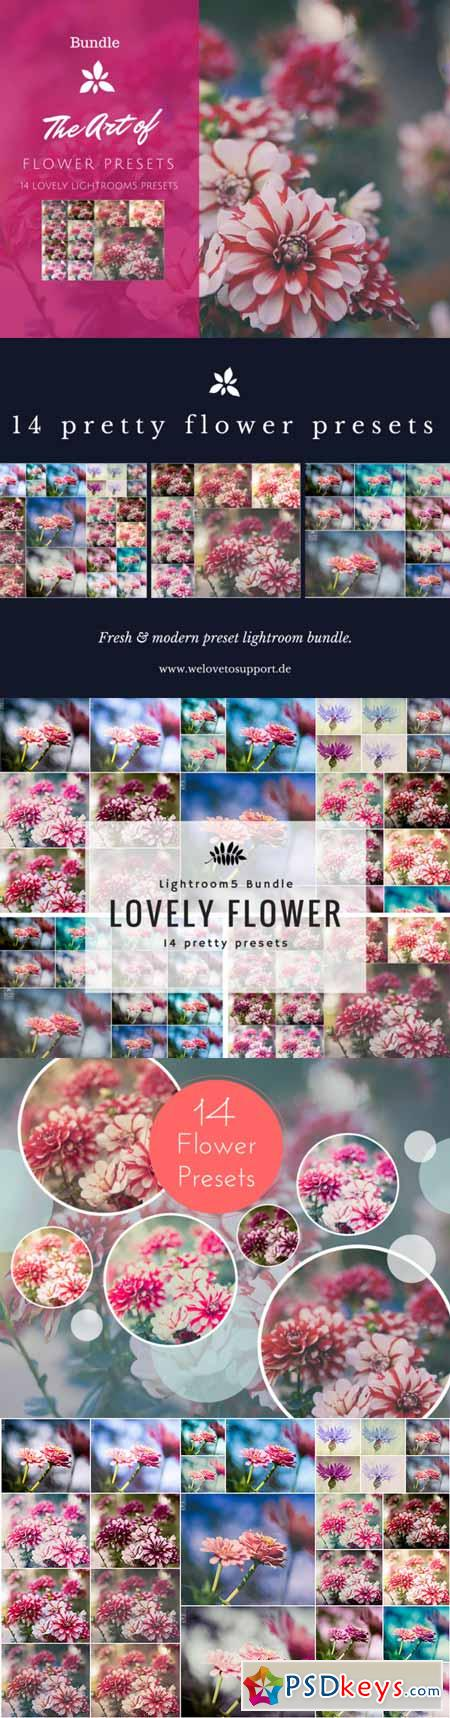 Pretty Flower Preset Bundle 216101